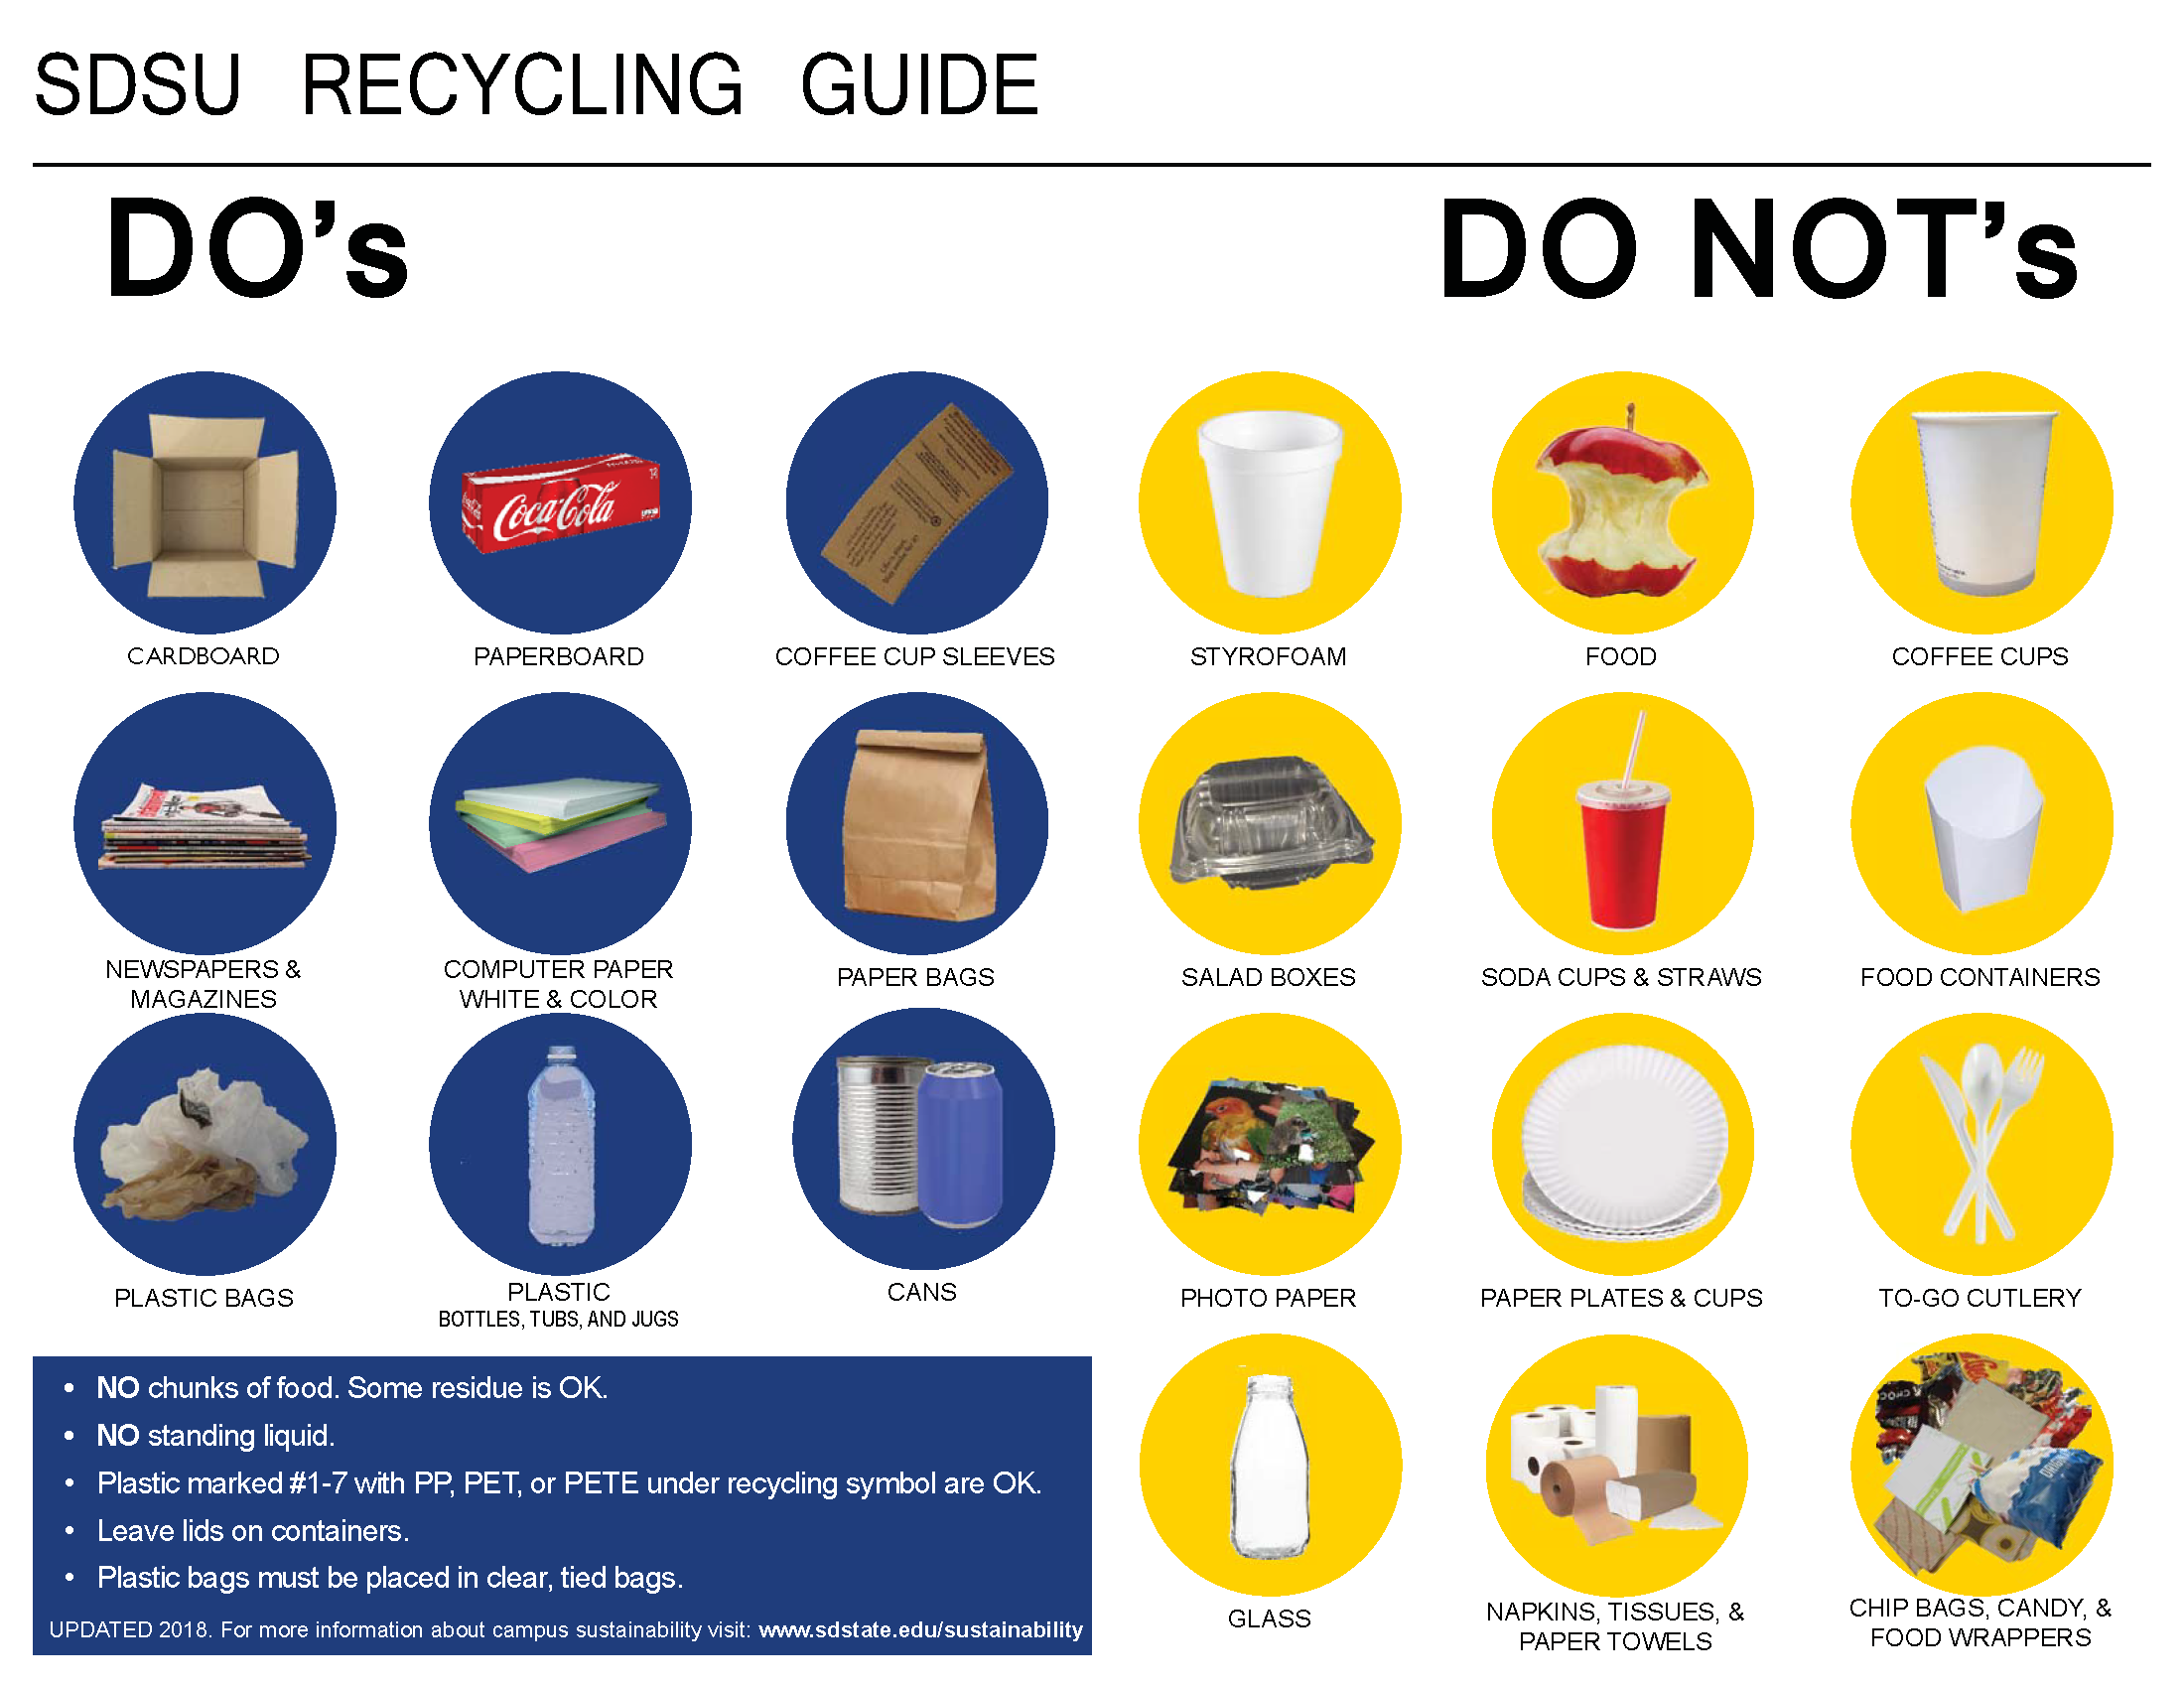 SDSU Recycling Guide. Can recycle: cans, cardboard, paperboard, coffee cup sleeves, newspapers, magazines, computer paper (white & color), paper bags, plastic bags, plastic. Can't recycle: food wrappers, candy wrappers napkins, tissues, paper towels, Styrofoam, food, coffee cups, salad boxes, soda cups, straws, food containers, photo paper, paper plates, paper cups, to-go cutlery, chip bags, glass.